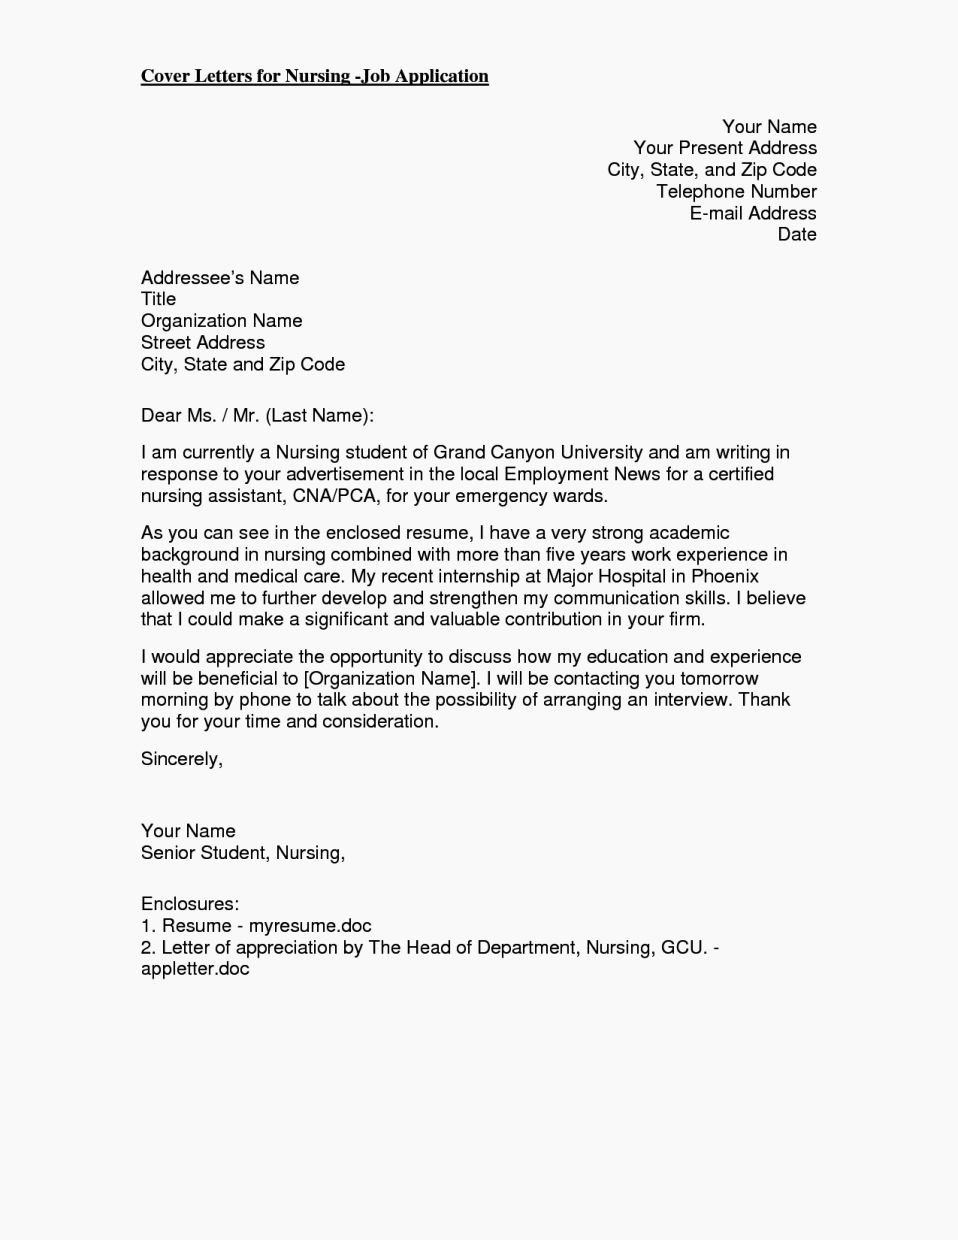 Cover Letter for Fnp Resume Template